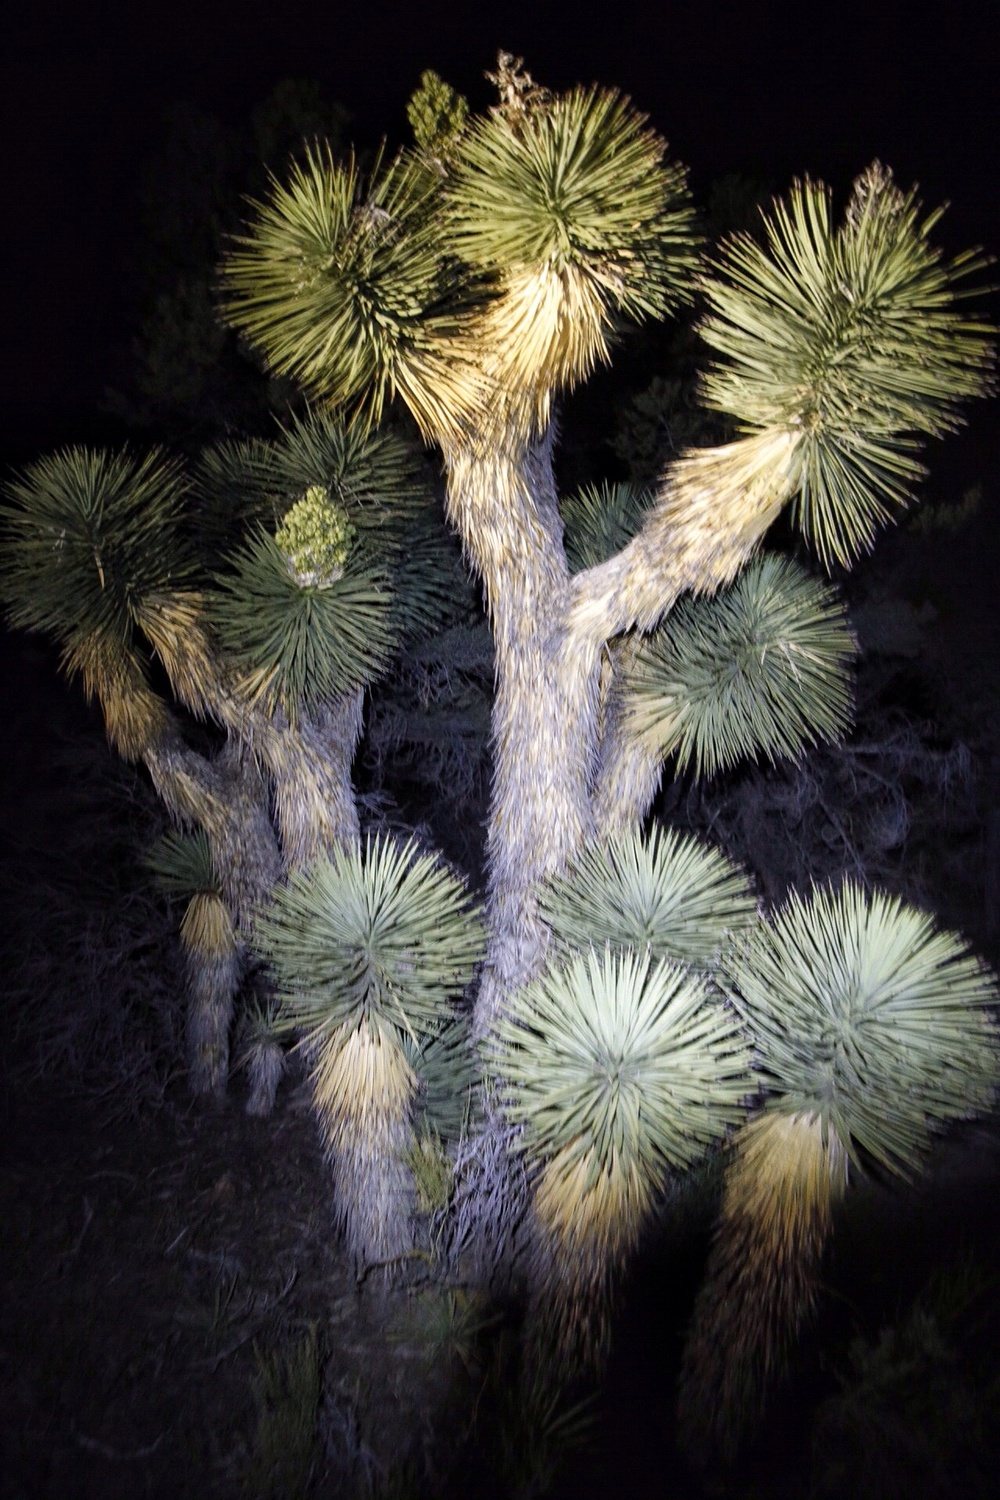 A Joshua tree as night fell.